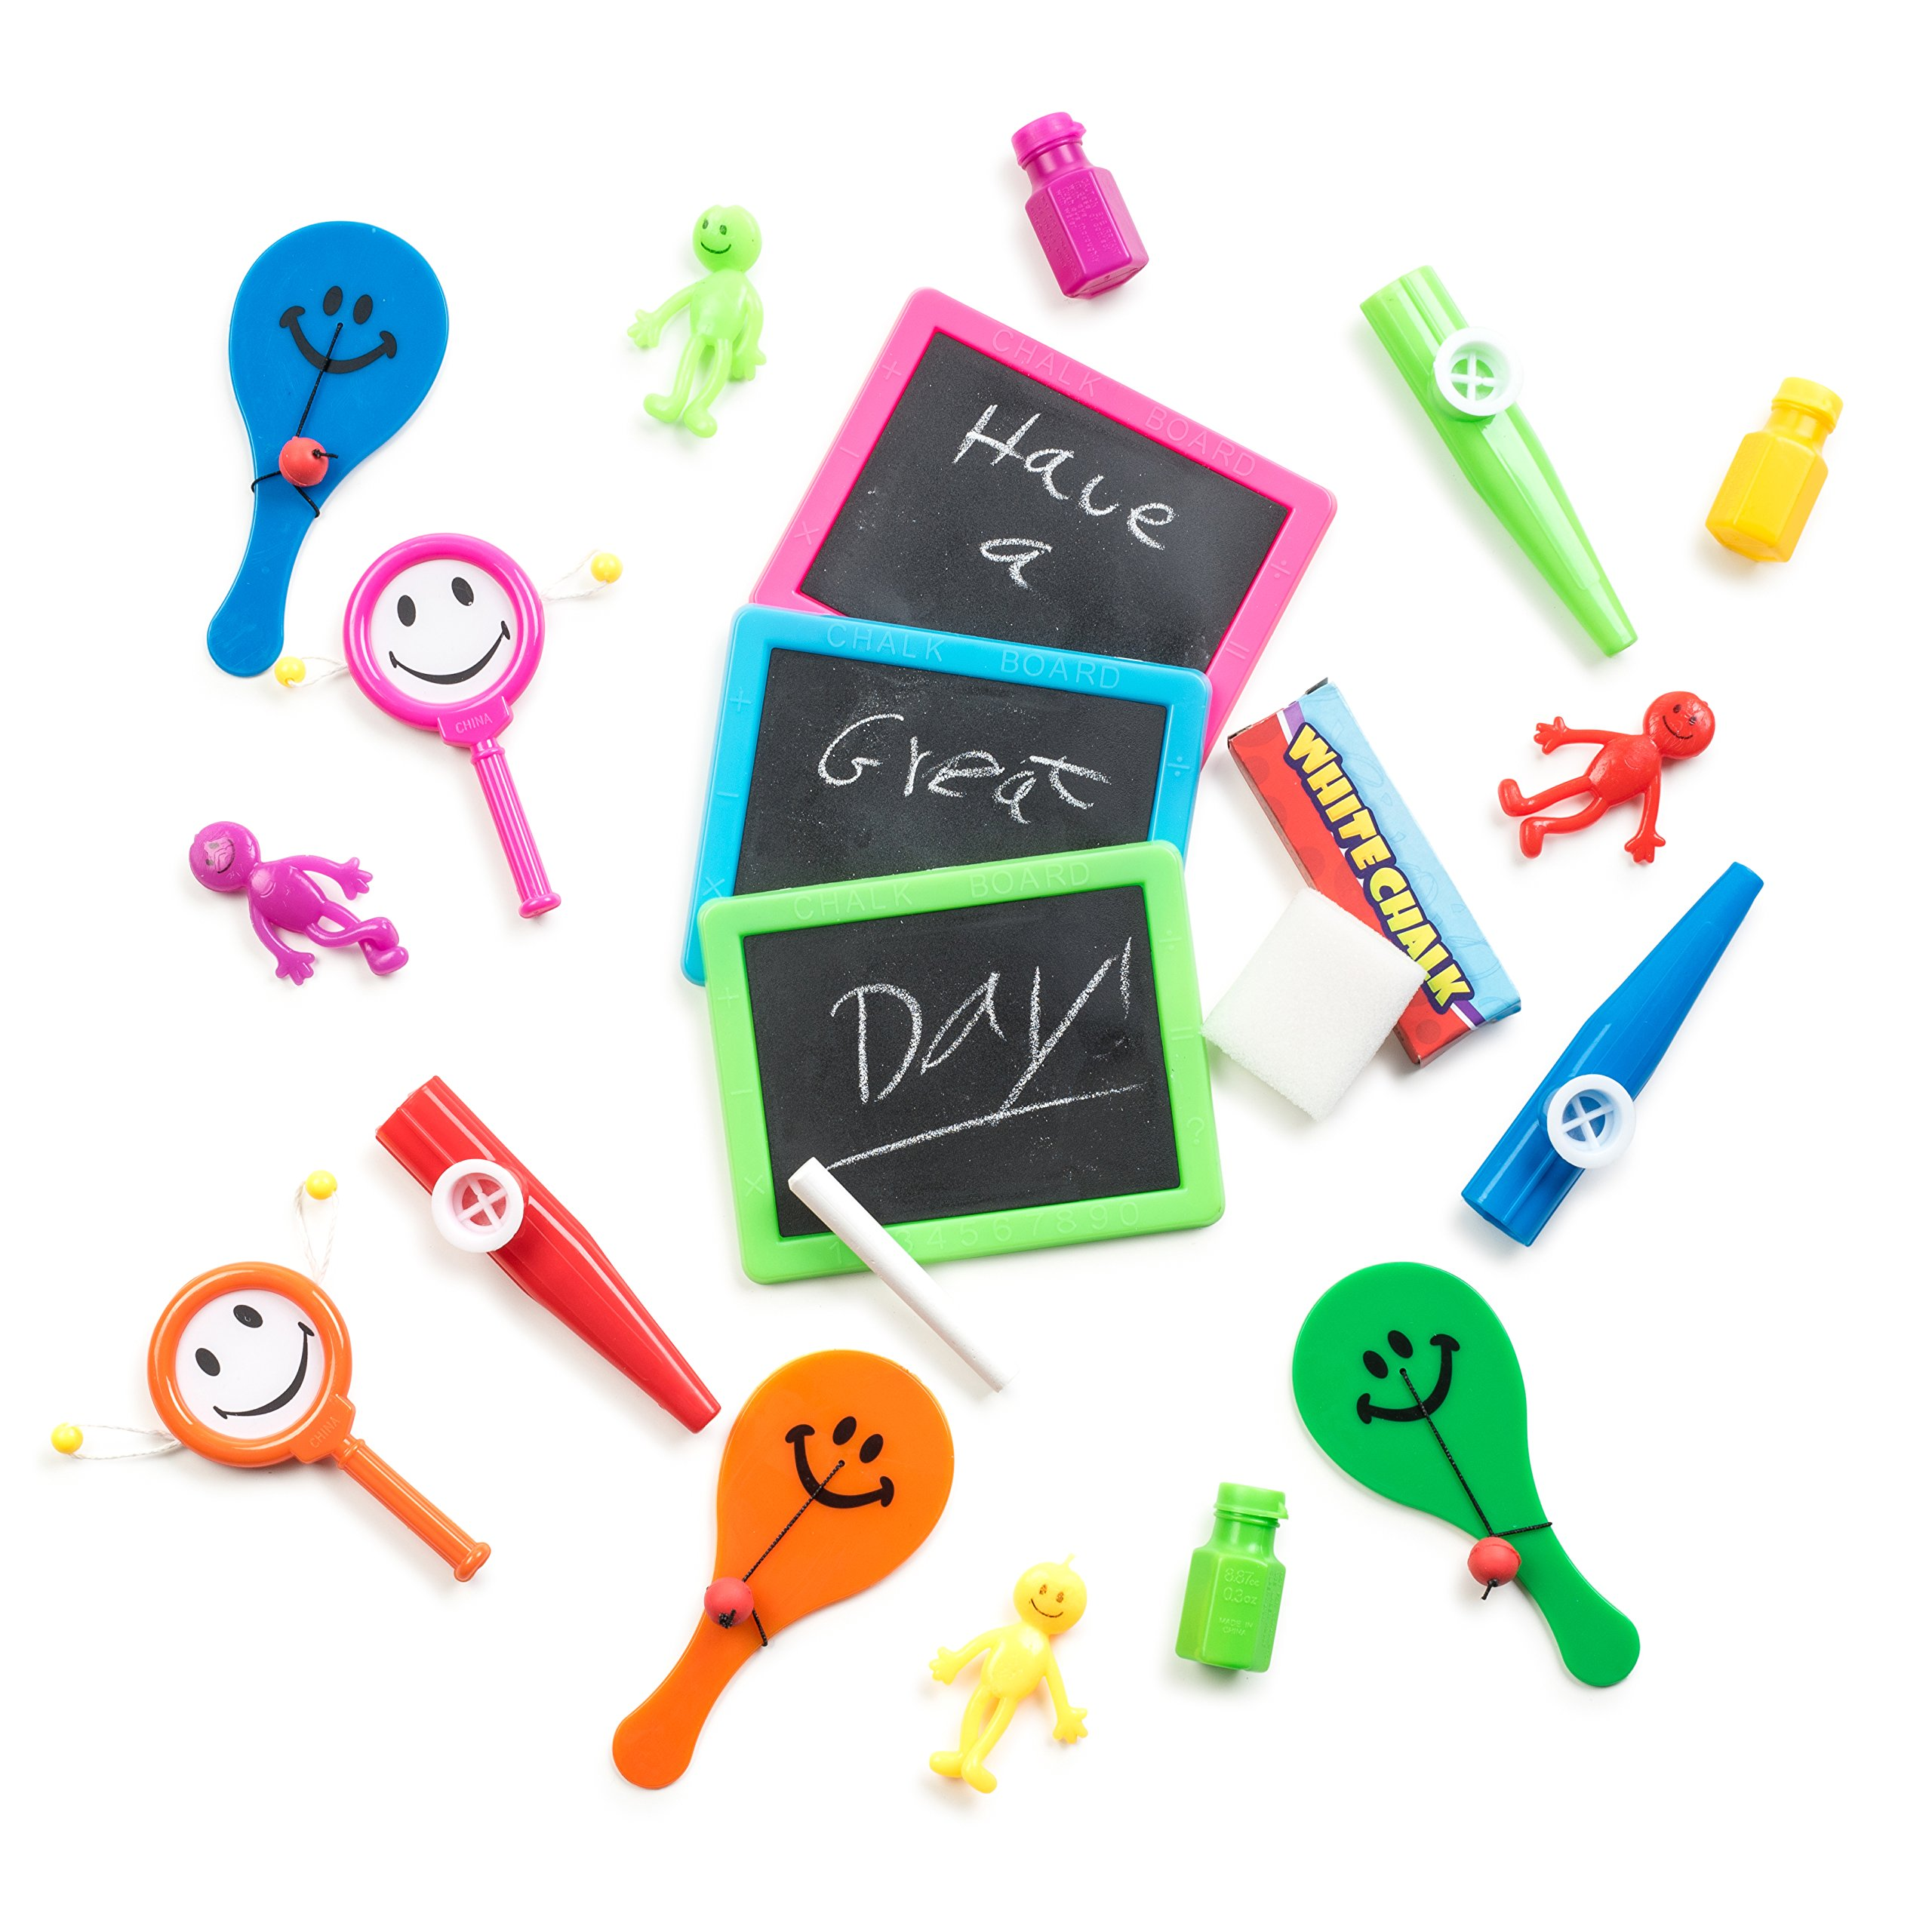 Today S Hint 7 Affordable Activity Ideas For First: Kids Bulk Stocking Stuffers: Amazon.com